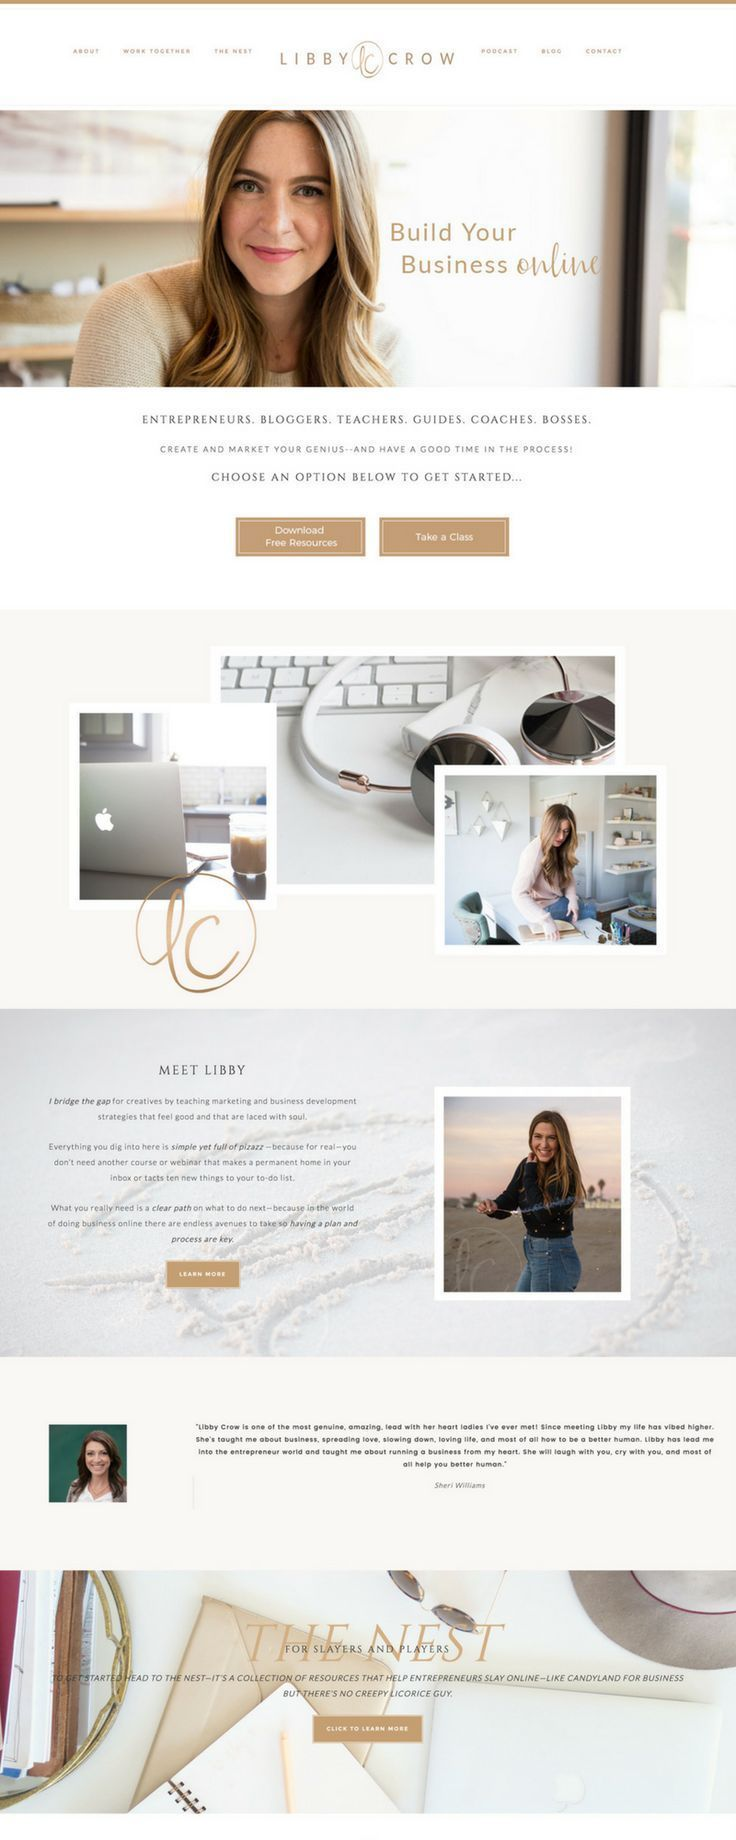 Branding And Web Design For A Solo Entrepreneur And Small Business Perfect For Wix Website I Web Development Design Beautiful Website Design Web Design Tips